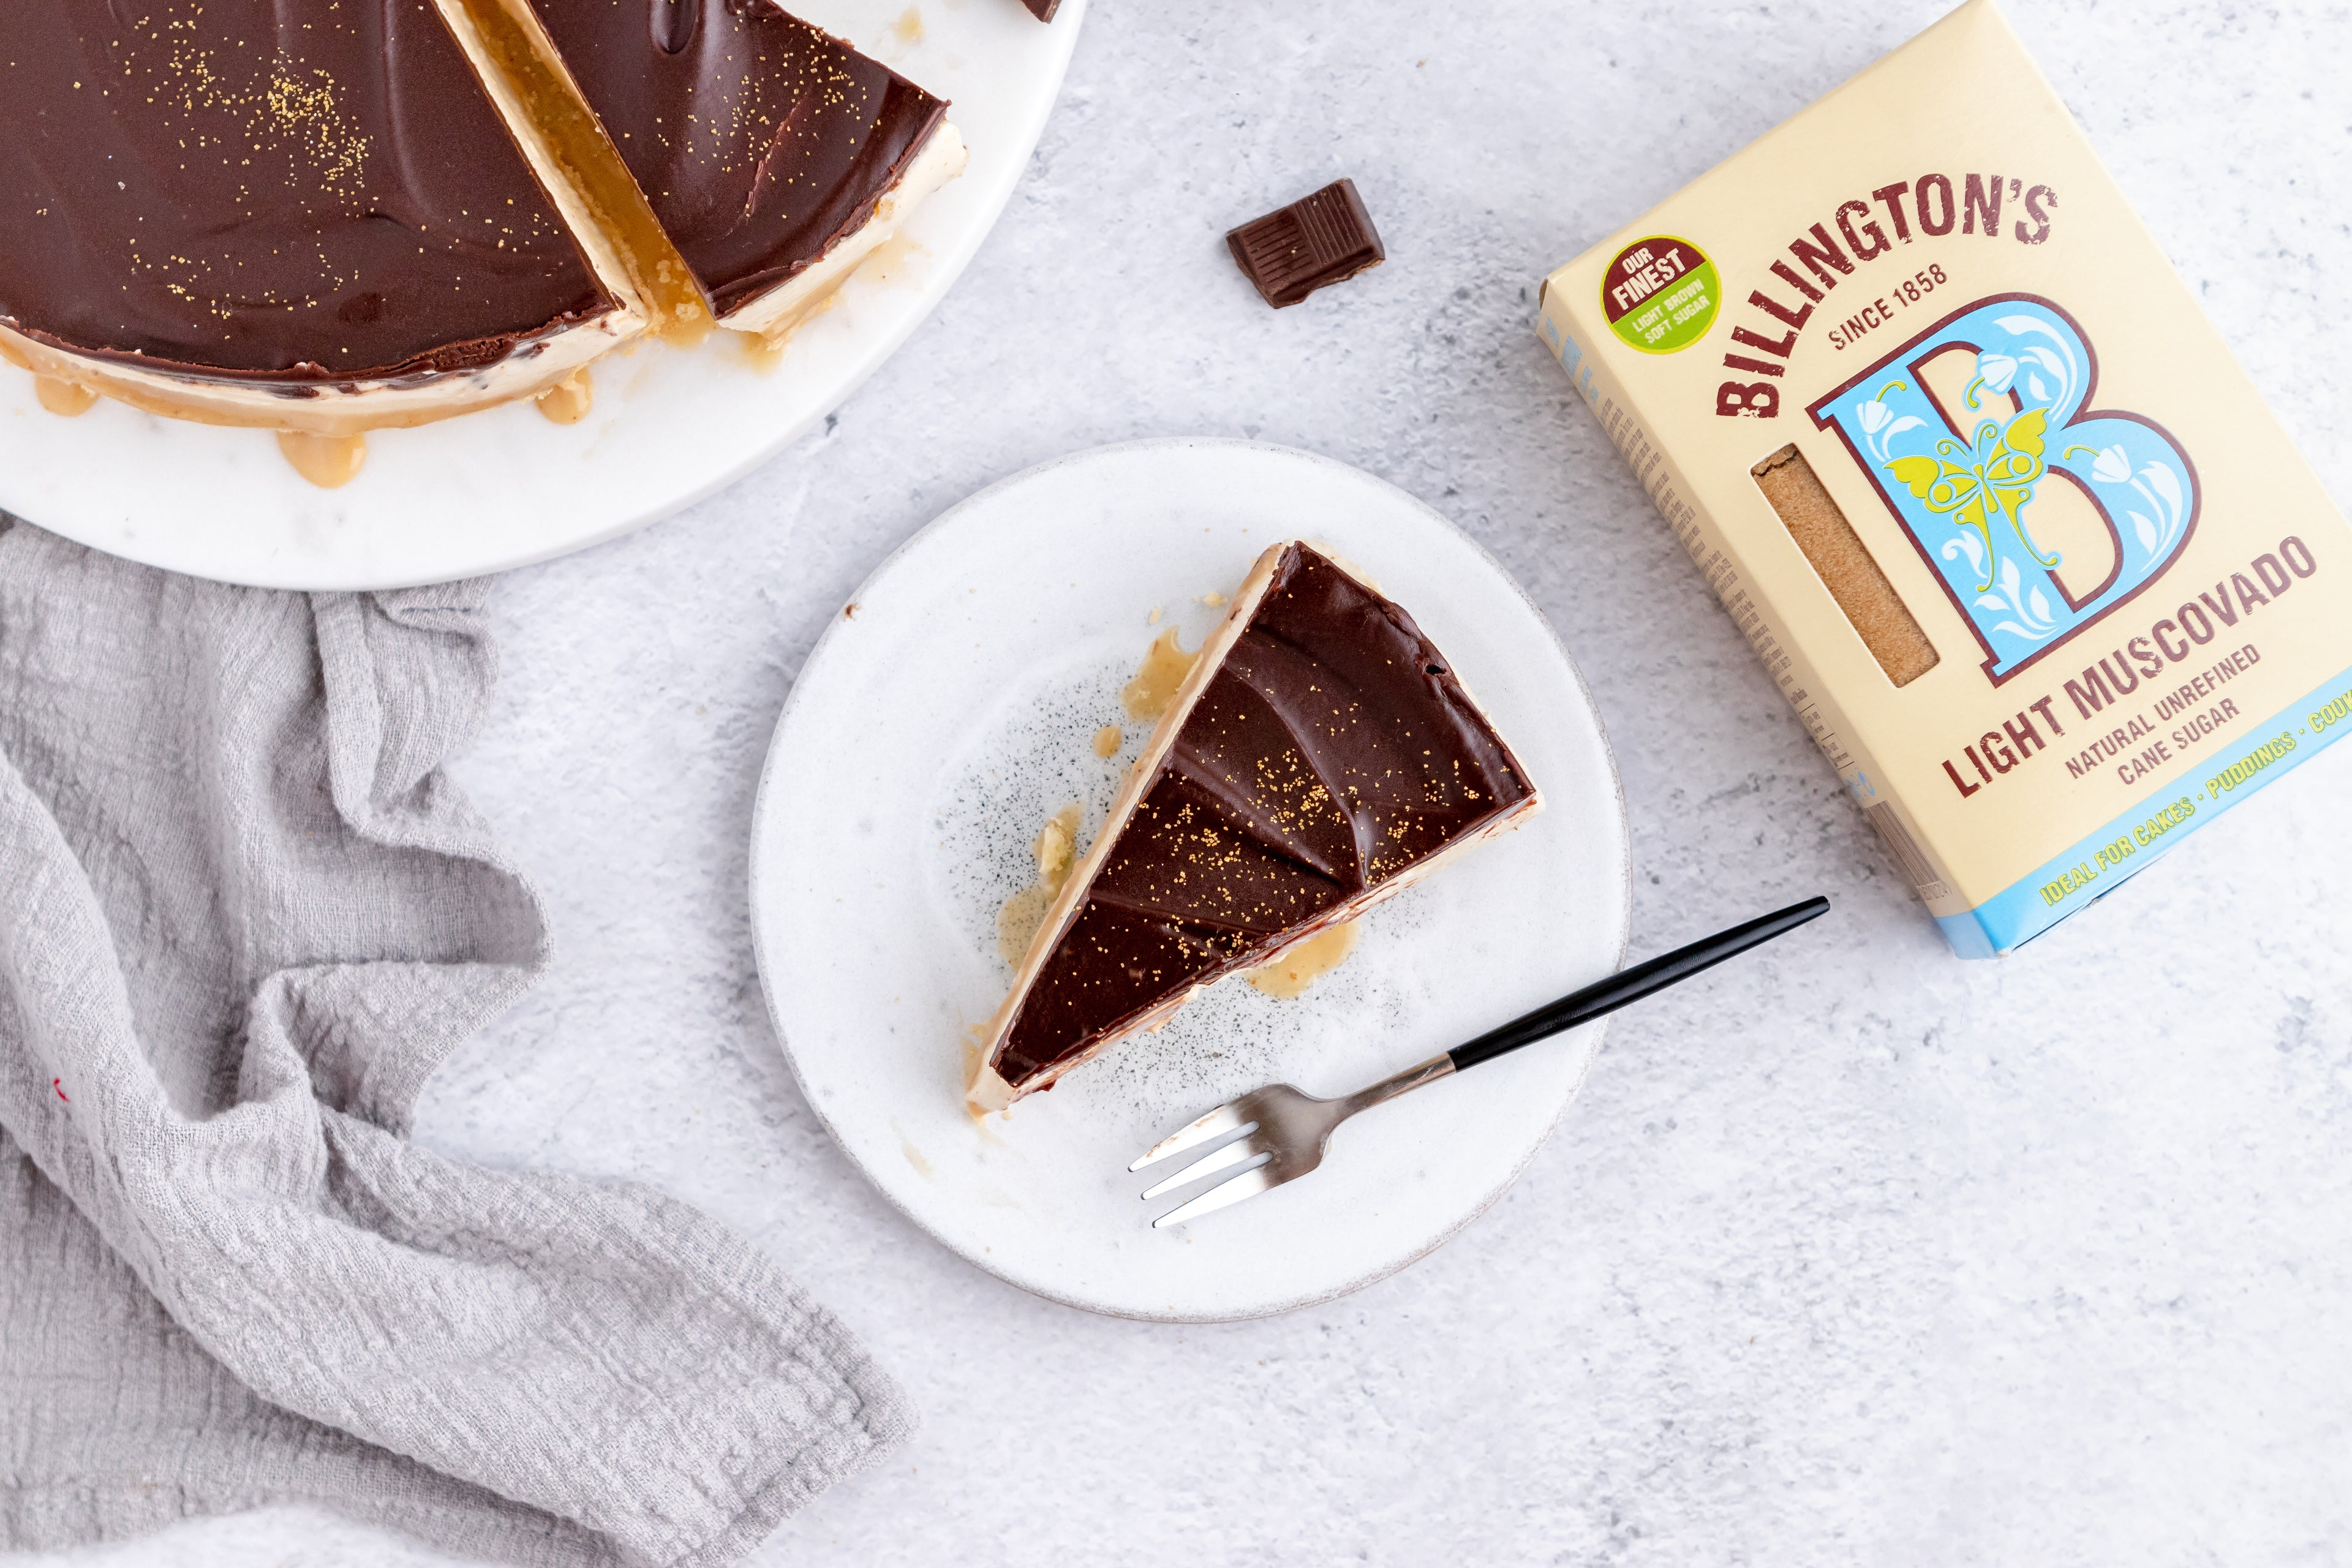 Millionaire's Cheesecake slice with a fork next to a box of Billington's Light Muscovado sugar